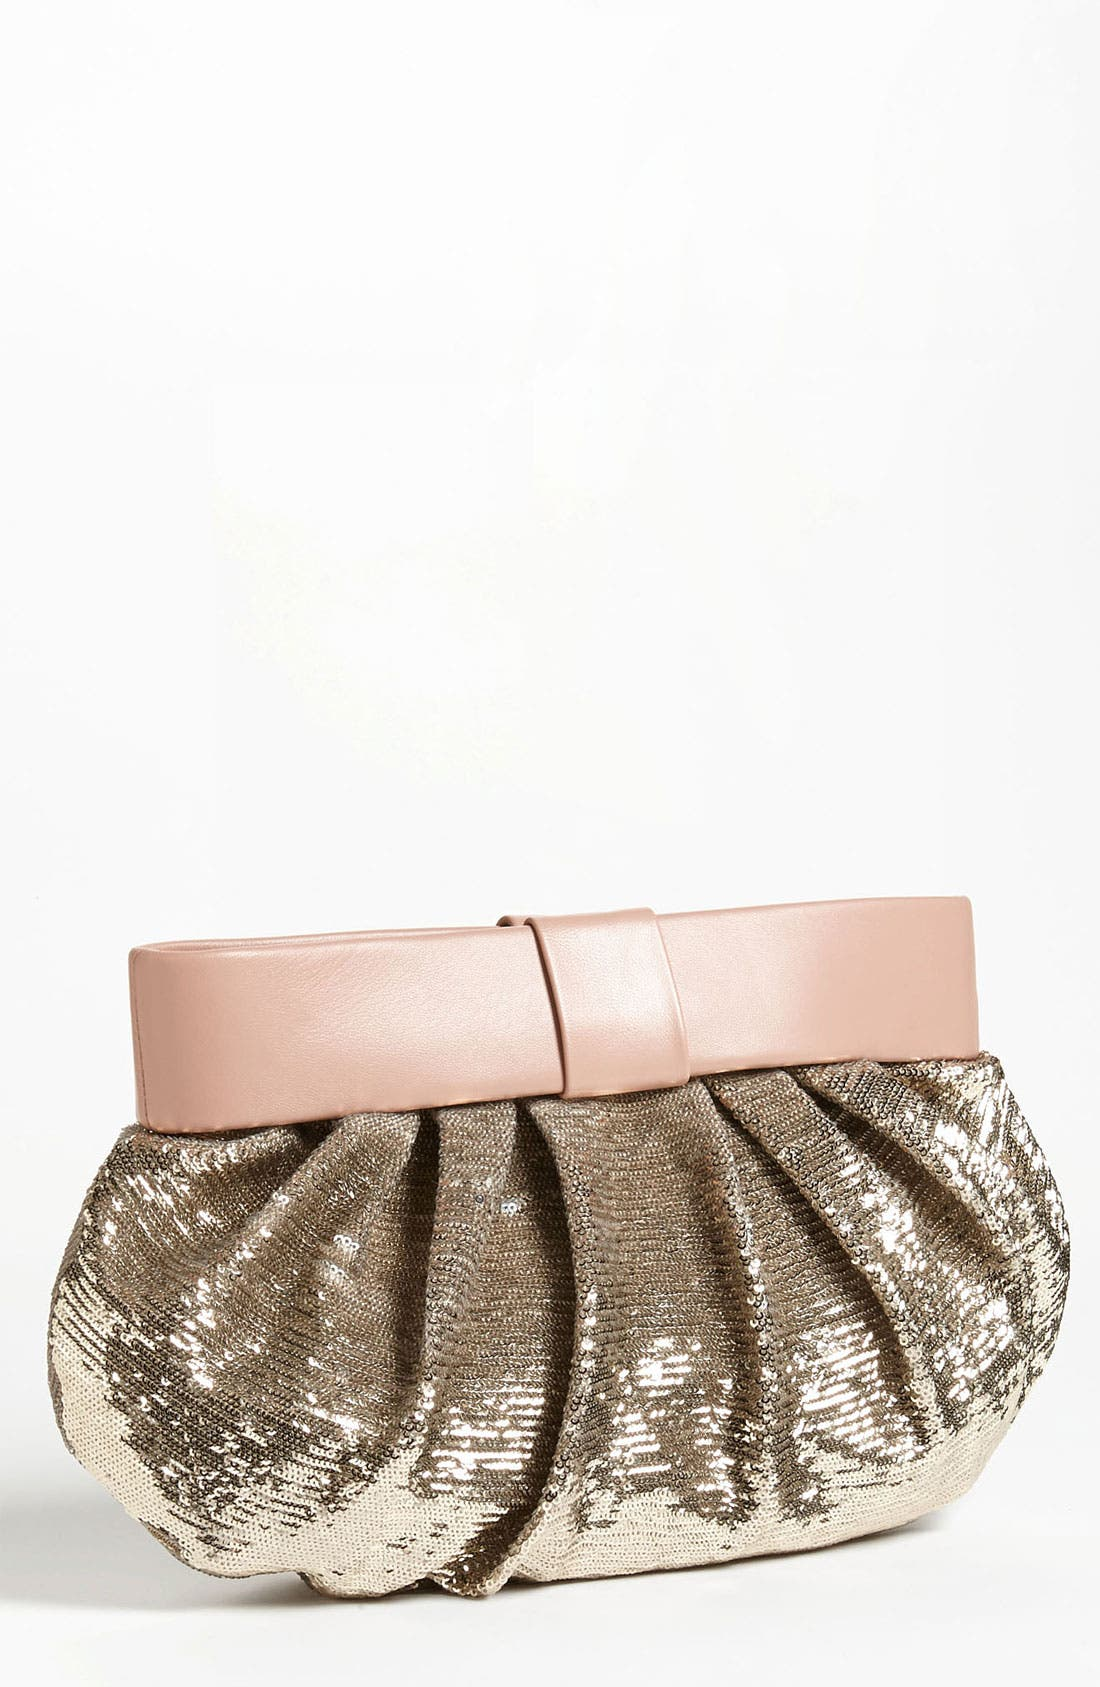 Main Image - RED Valentino 'Bow' Sequin Clutch